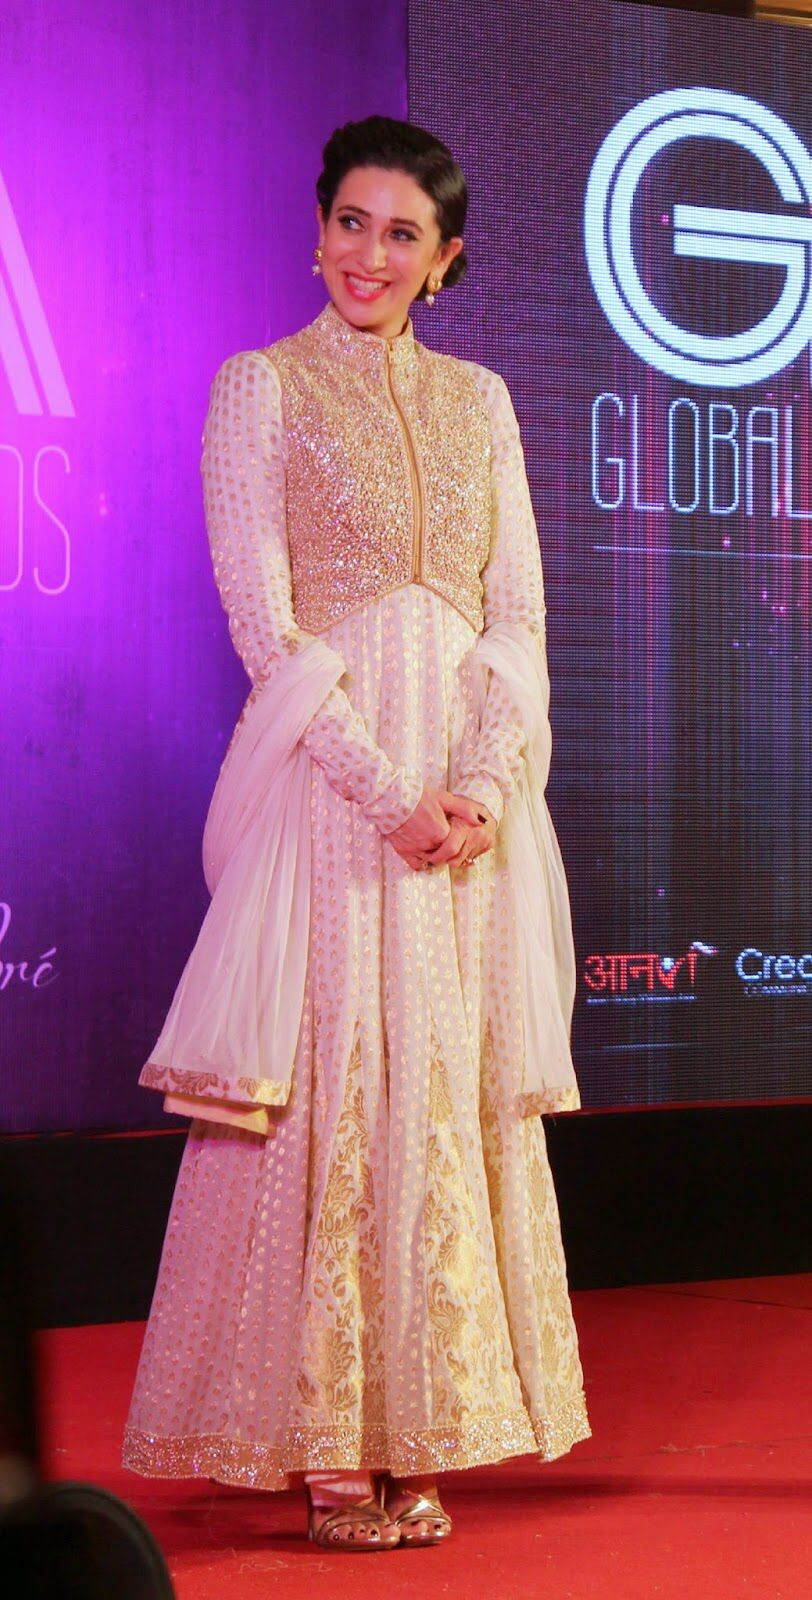 karishma kapoor in white n explore d ign r accoutr accoutr outfits and more